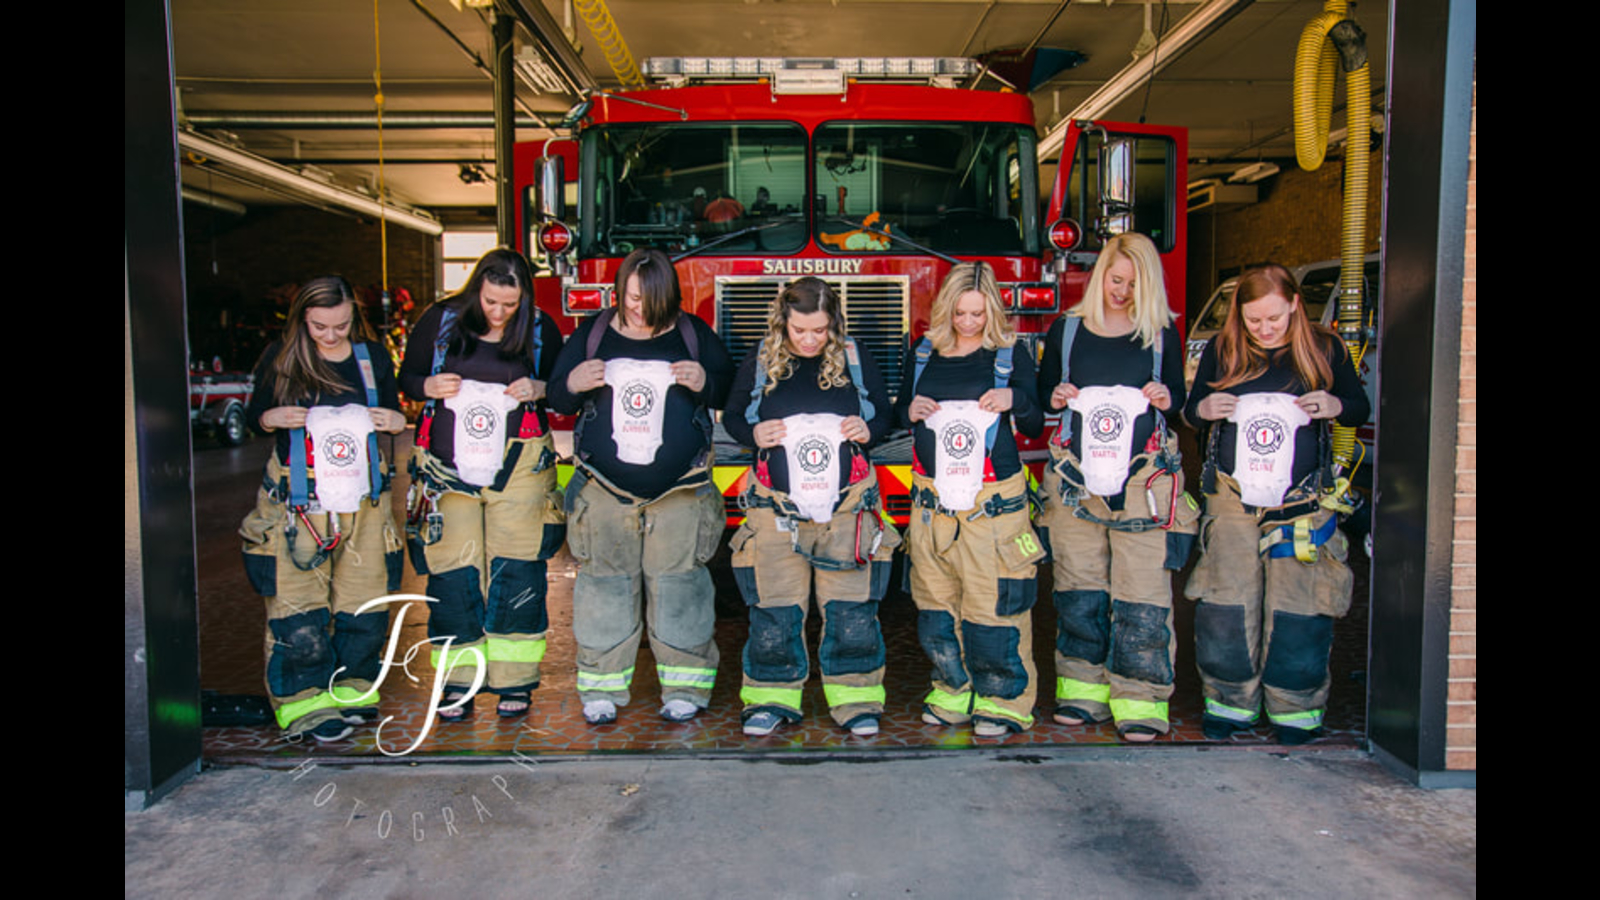 74d61a54 North Carolina fire department expecting 7 babies | abc7news.com